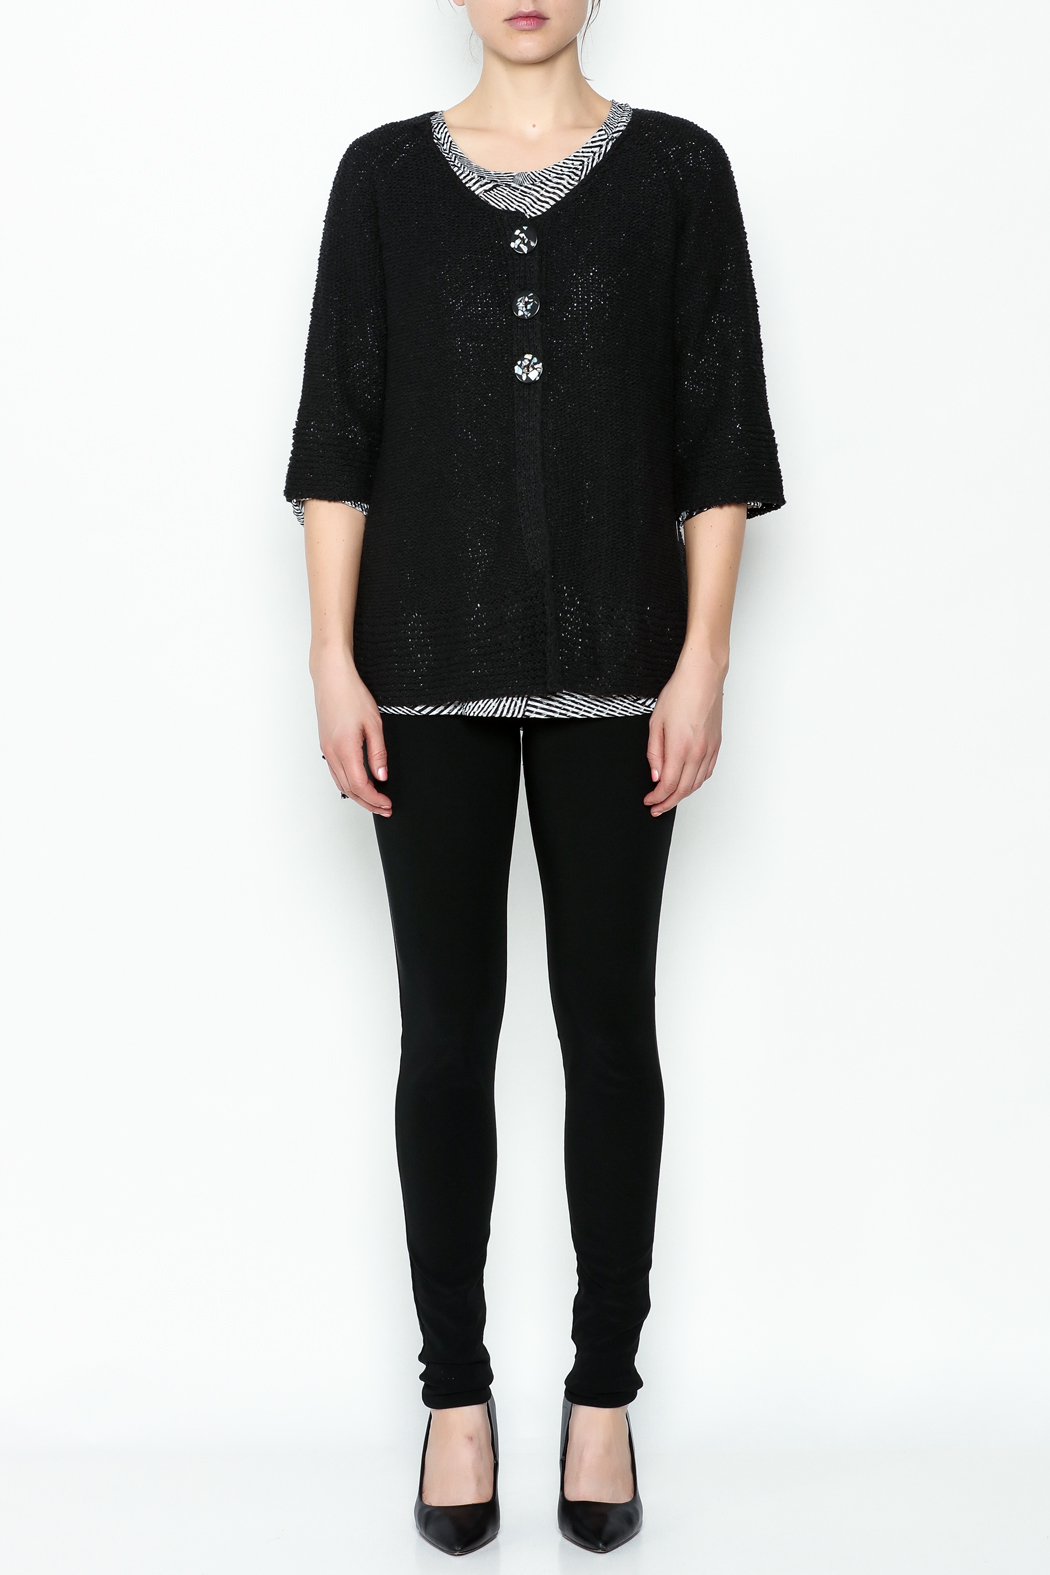 Lulu B Raglan Black Cardigan - Side Cropped Image